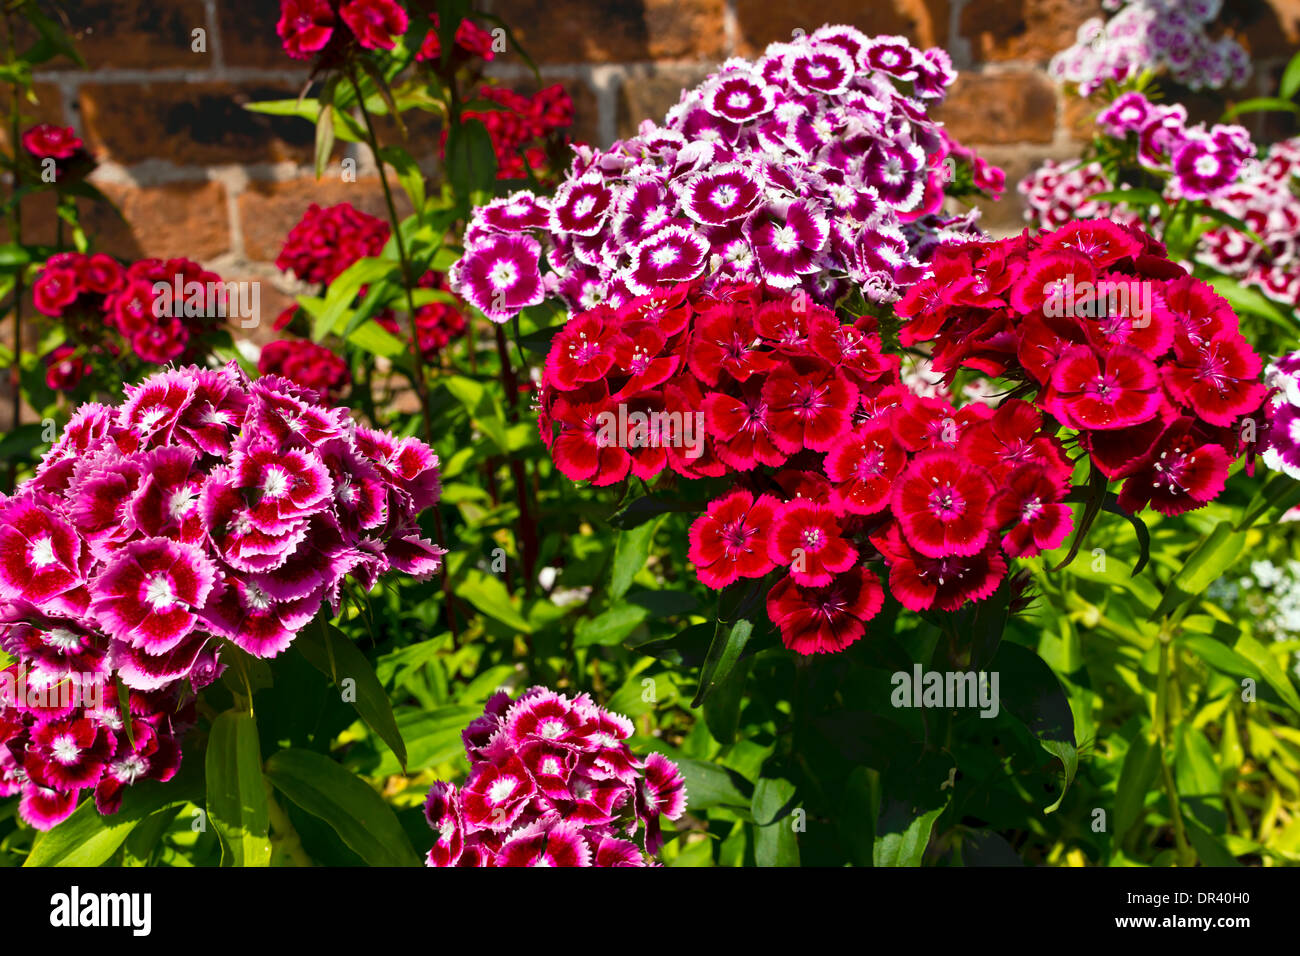 Multicolored Sweet William dianthus hardy biennial flowers in a garden. - Stock Image